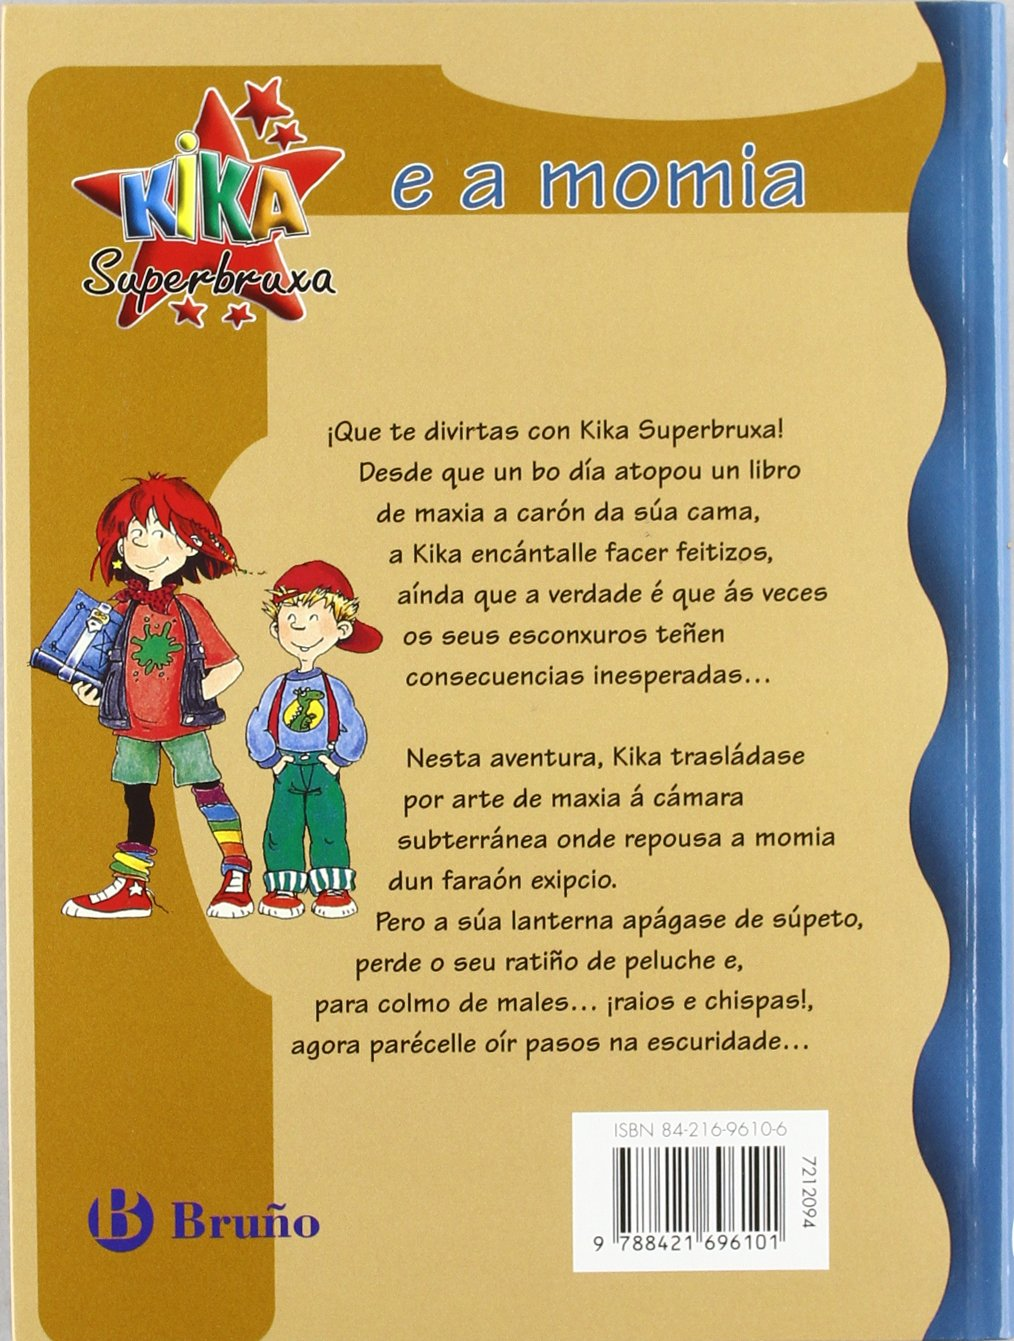 Amazon.com: Kika Superbruxa E a Momia (Kika Superbruxa/ Kika Super Witch) (Galician Edition) (9788421696101): Knister: Books